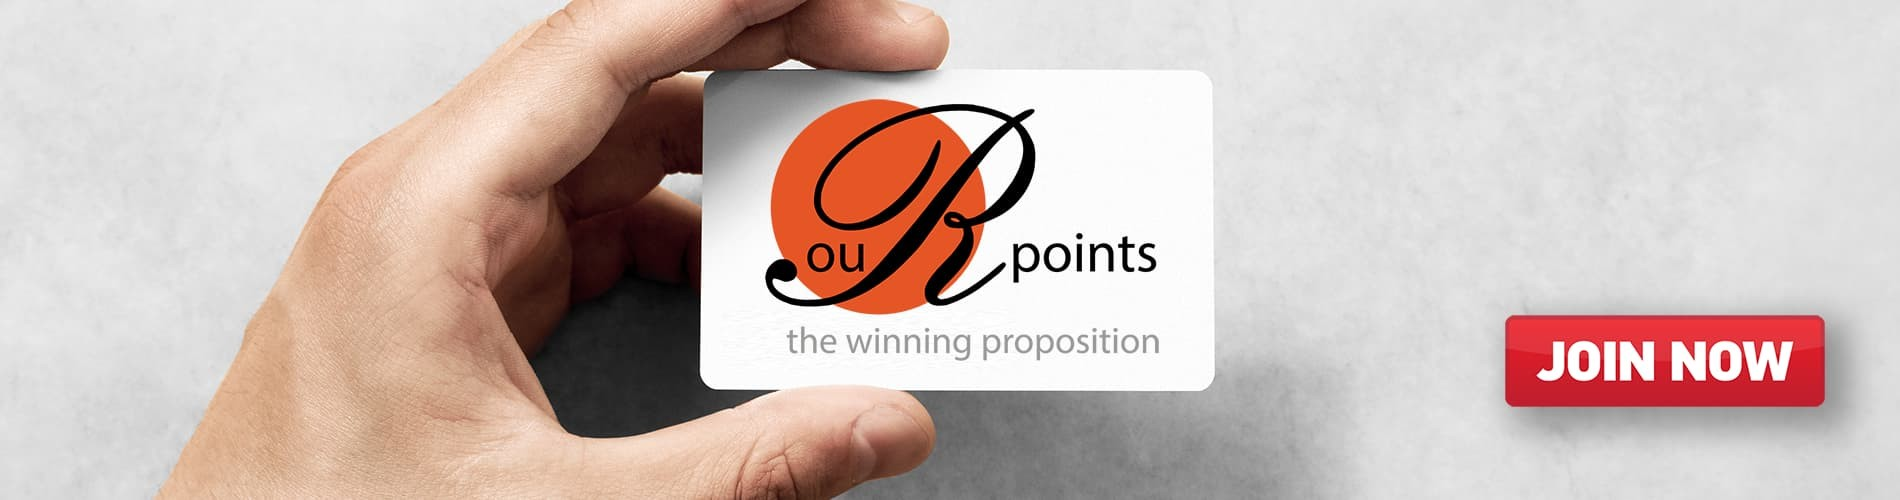 ouR points_slider